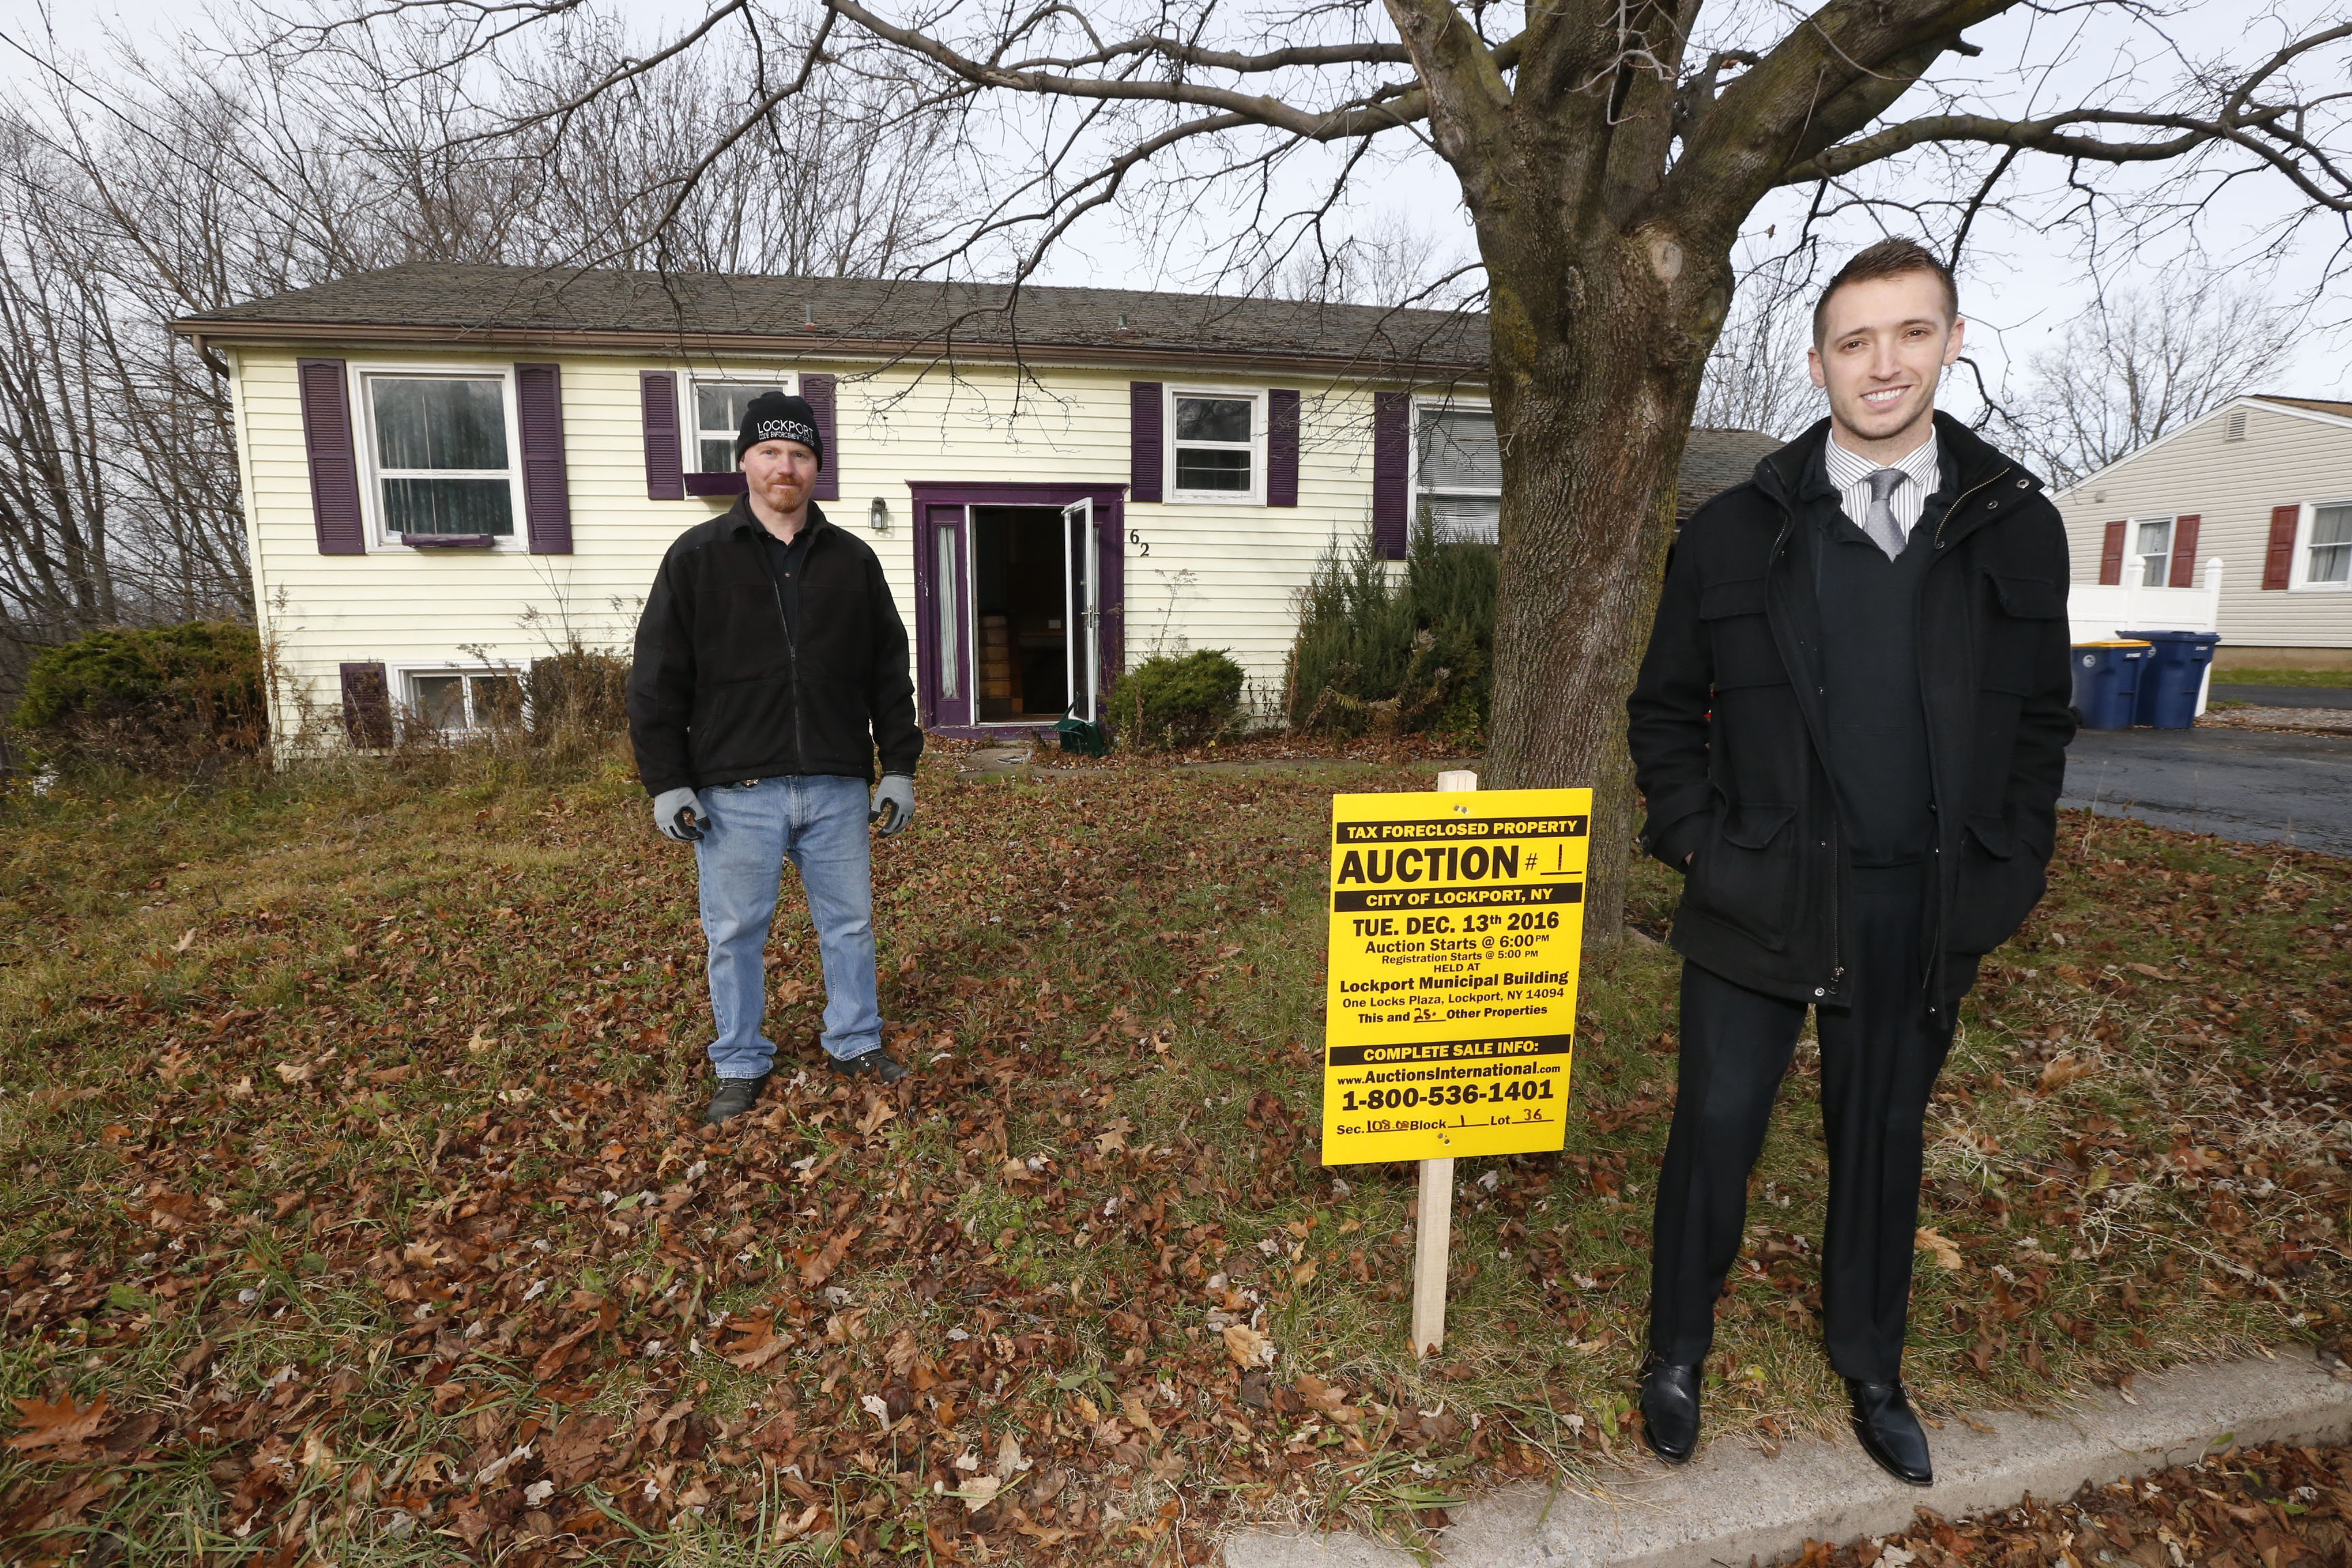 Brian Smith, Lockport director of planning and development, right, and Clayton Dimmick, Lockport's senior building inspector, survey a home at 62 Hillcrest Drive on Tuesday, Dec. 6, 2016. The home will be auctioned soon. (Robert Kirkham/Buffalo News)